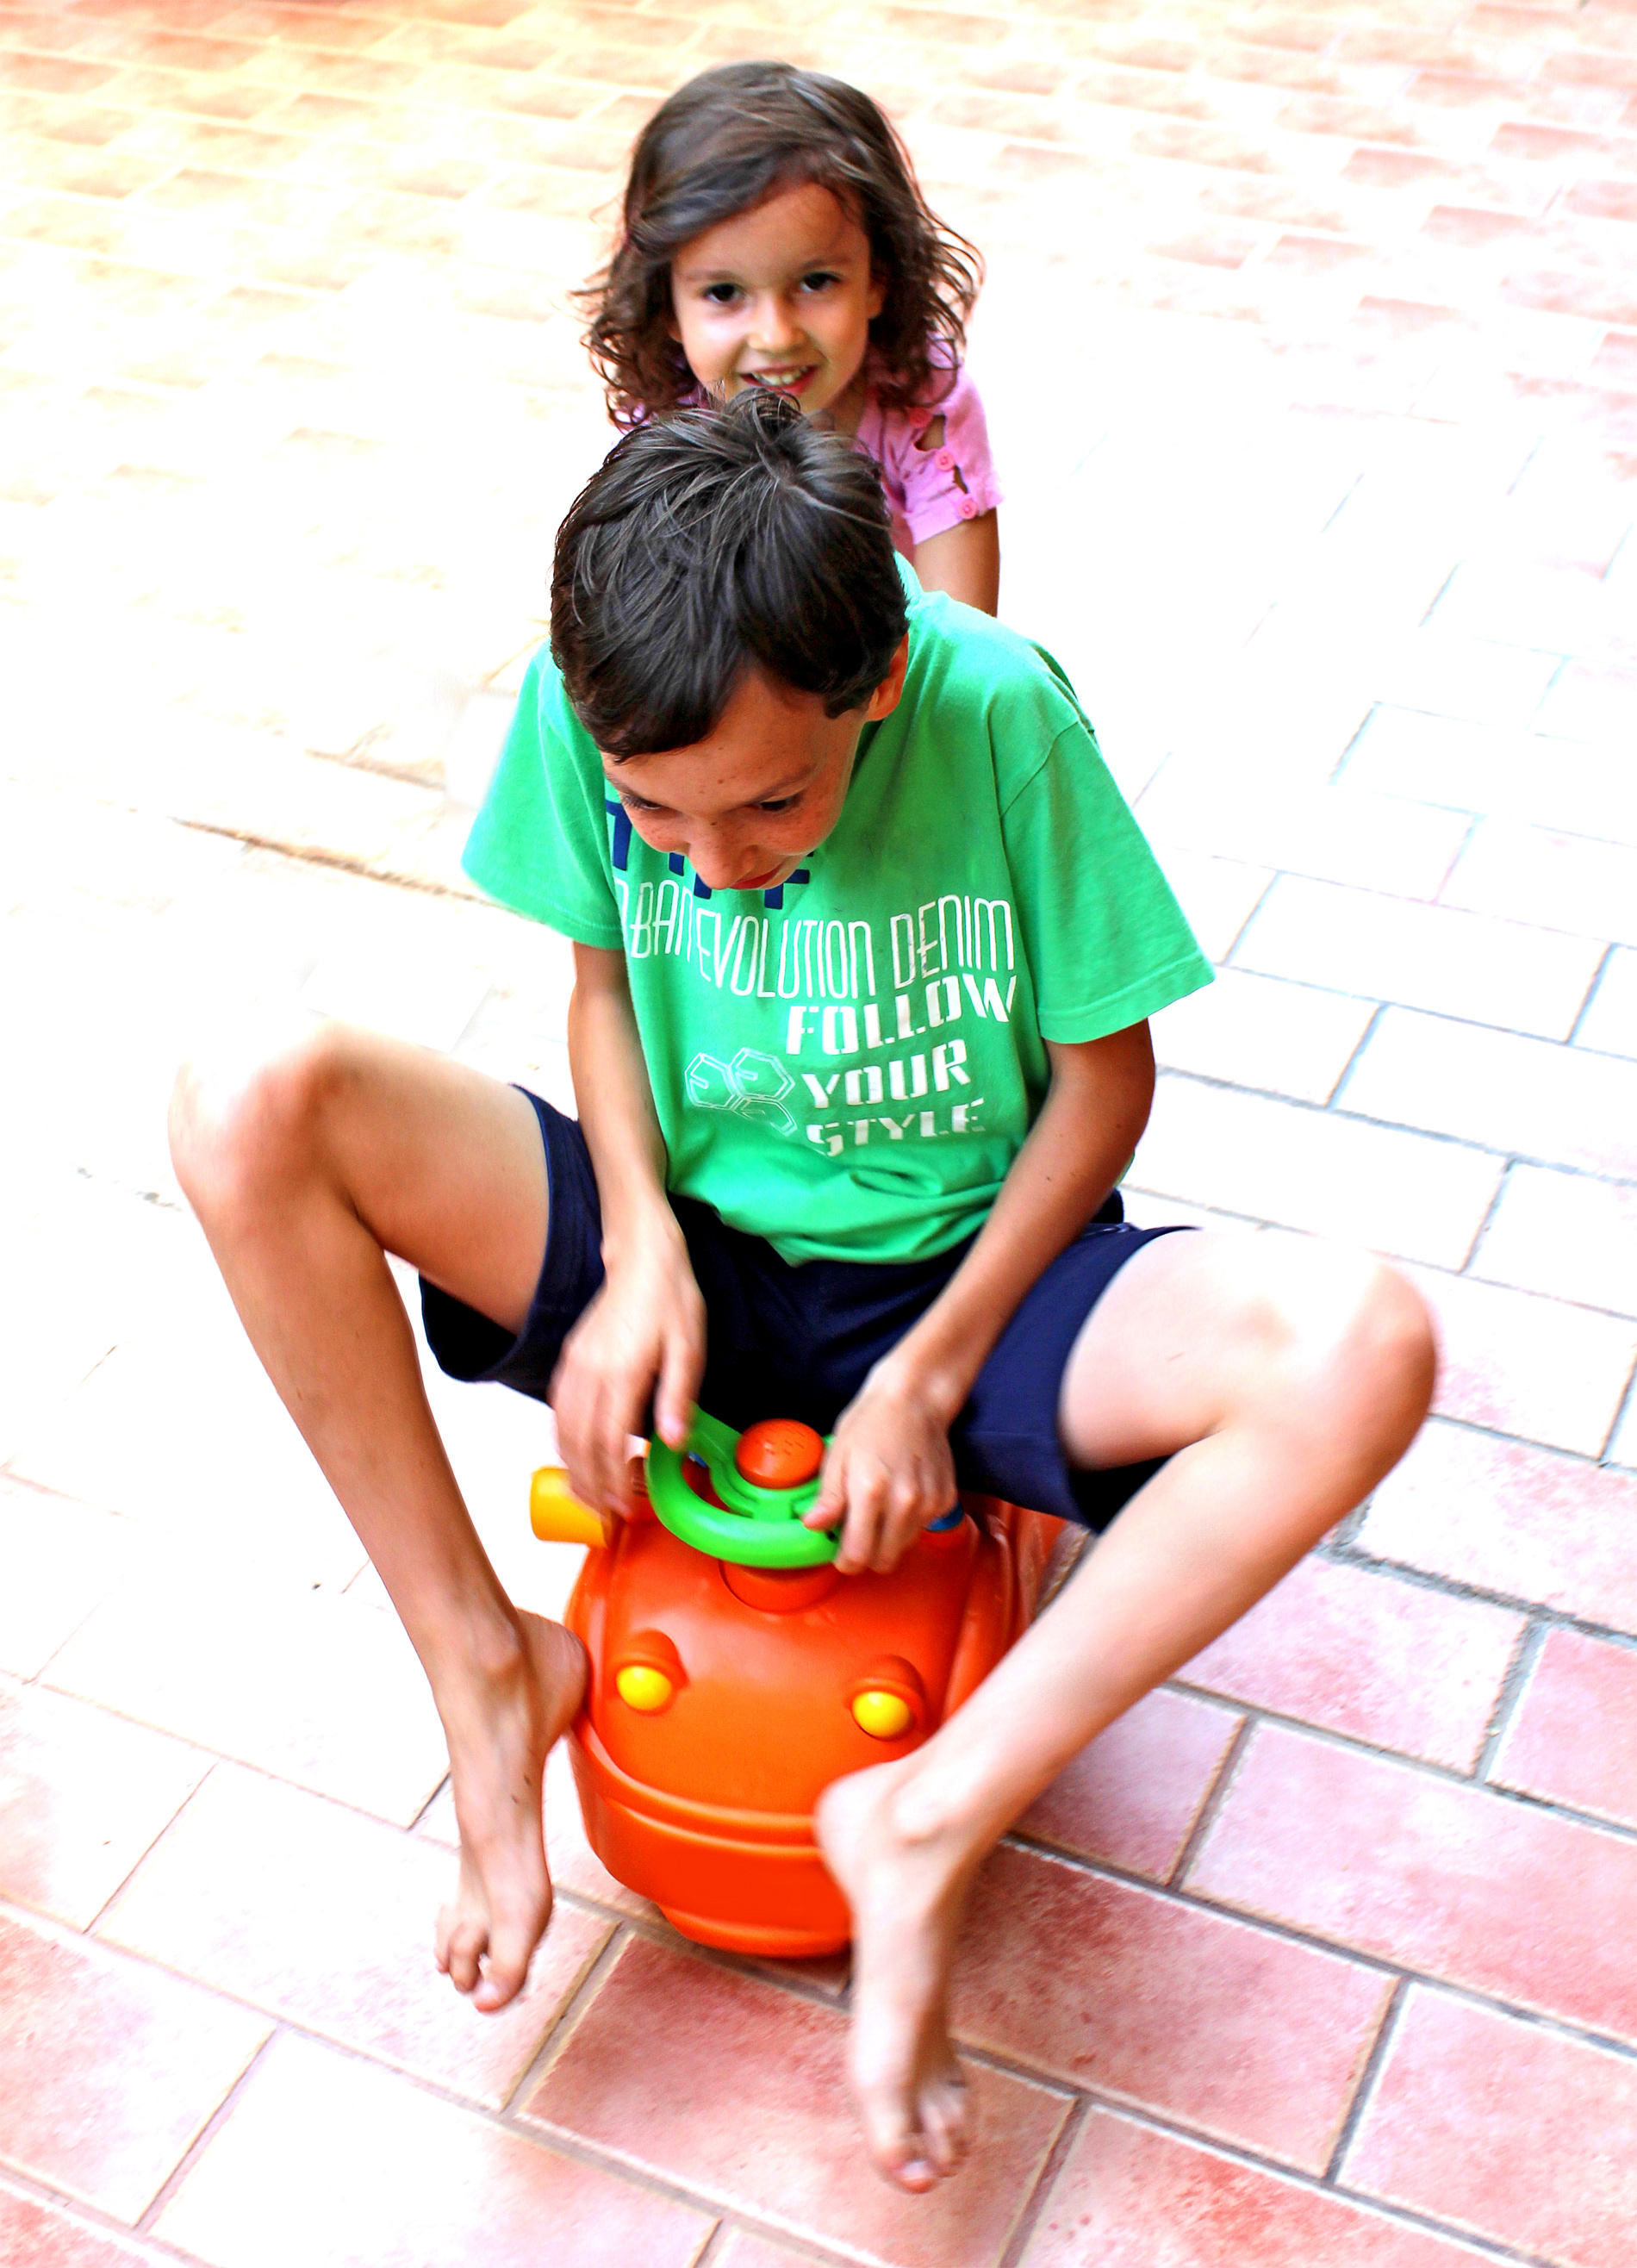 Happy siblings playing together, Activity, Preschooler, Learning, Leisure, HQ Photo